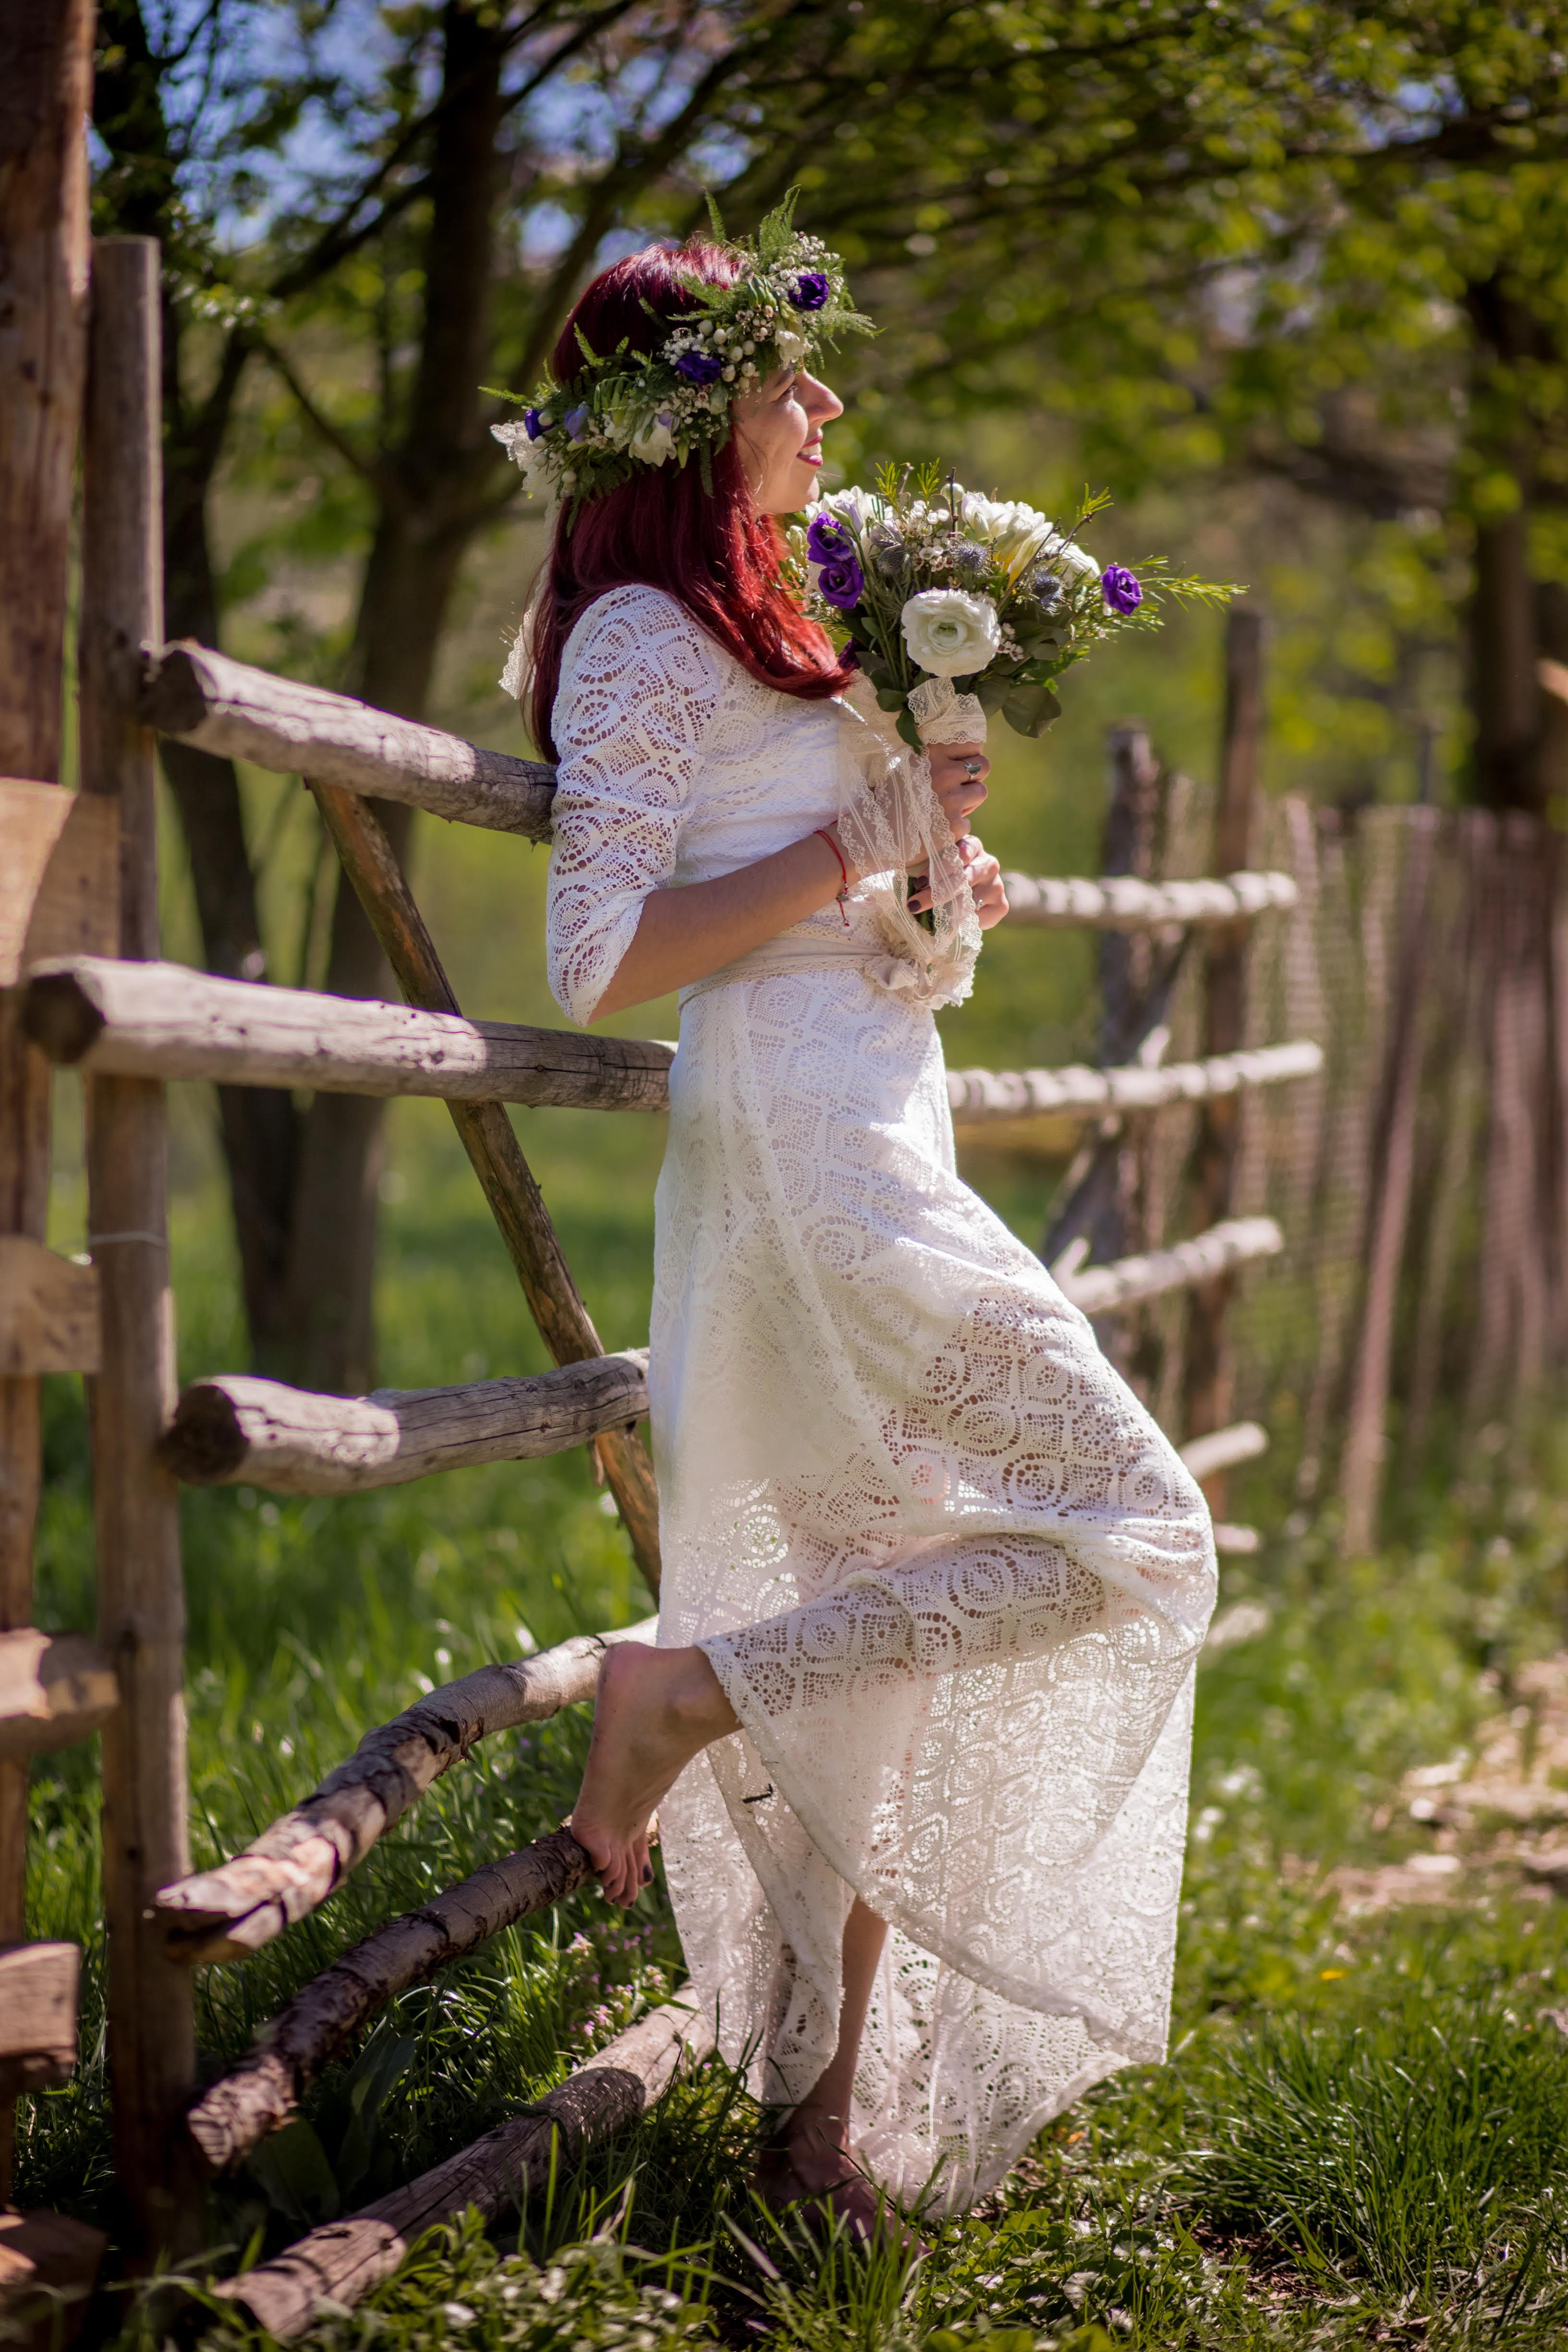 Woman In White Long-sleeved Gown Holding Flower Bouquet